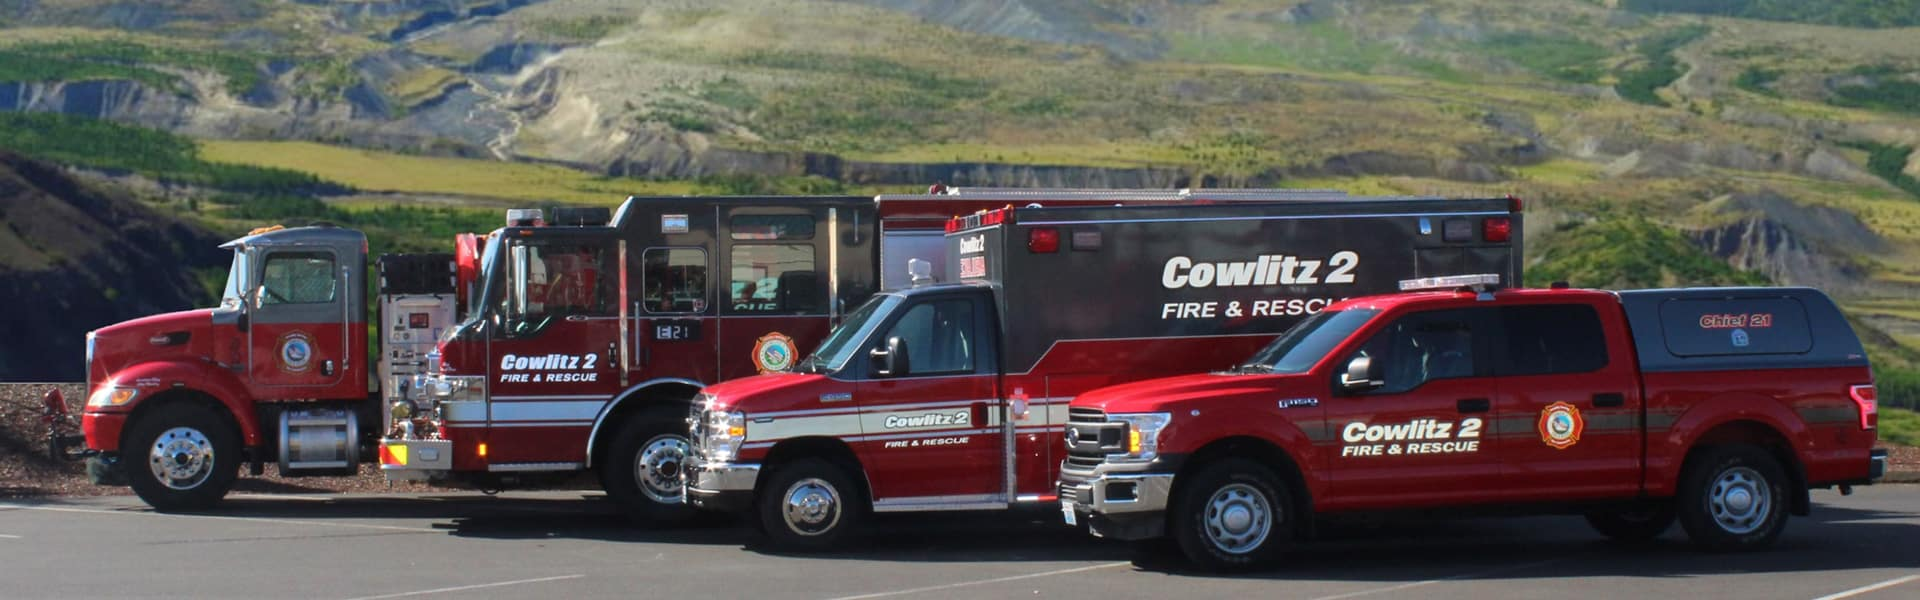 Cowlitz 2 Fire & Rescue